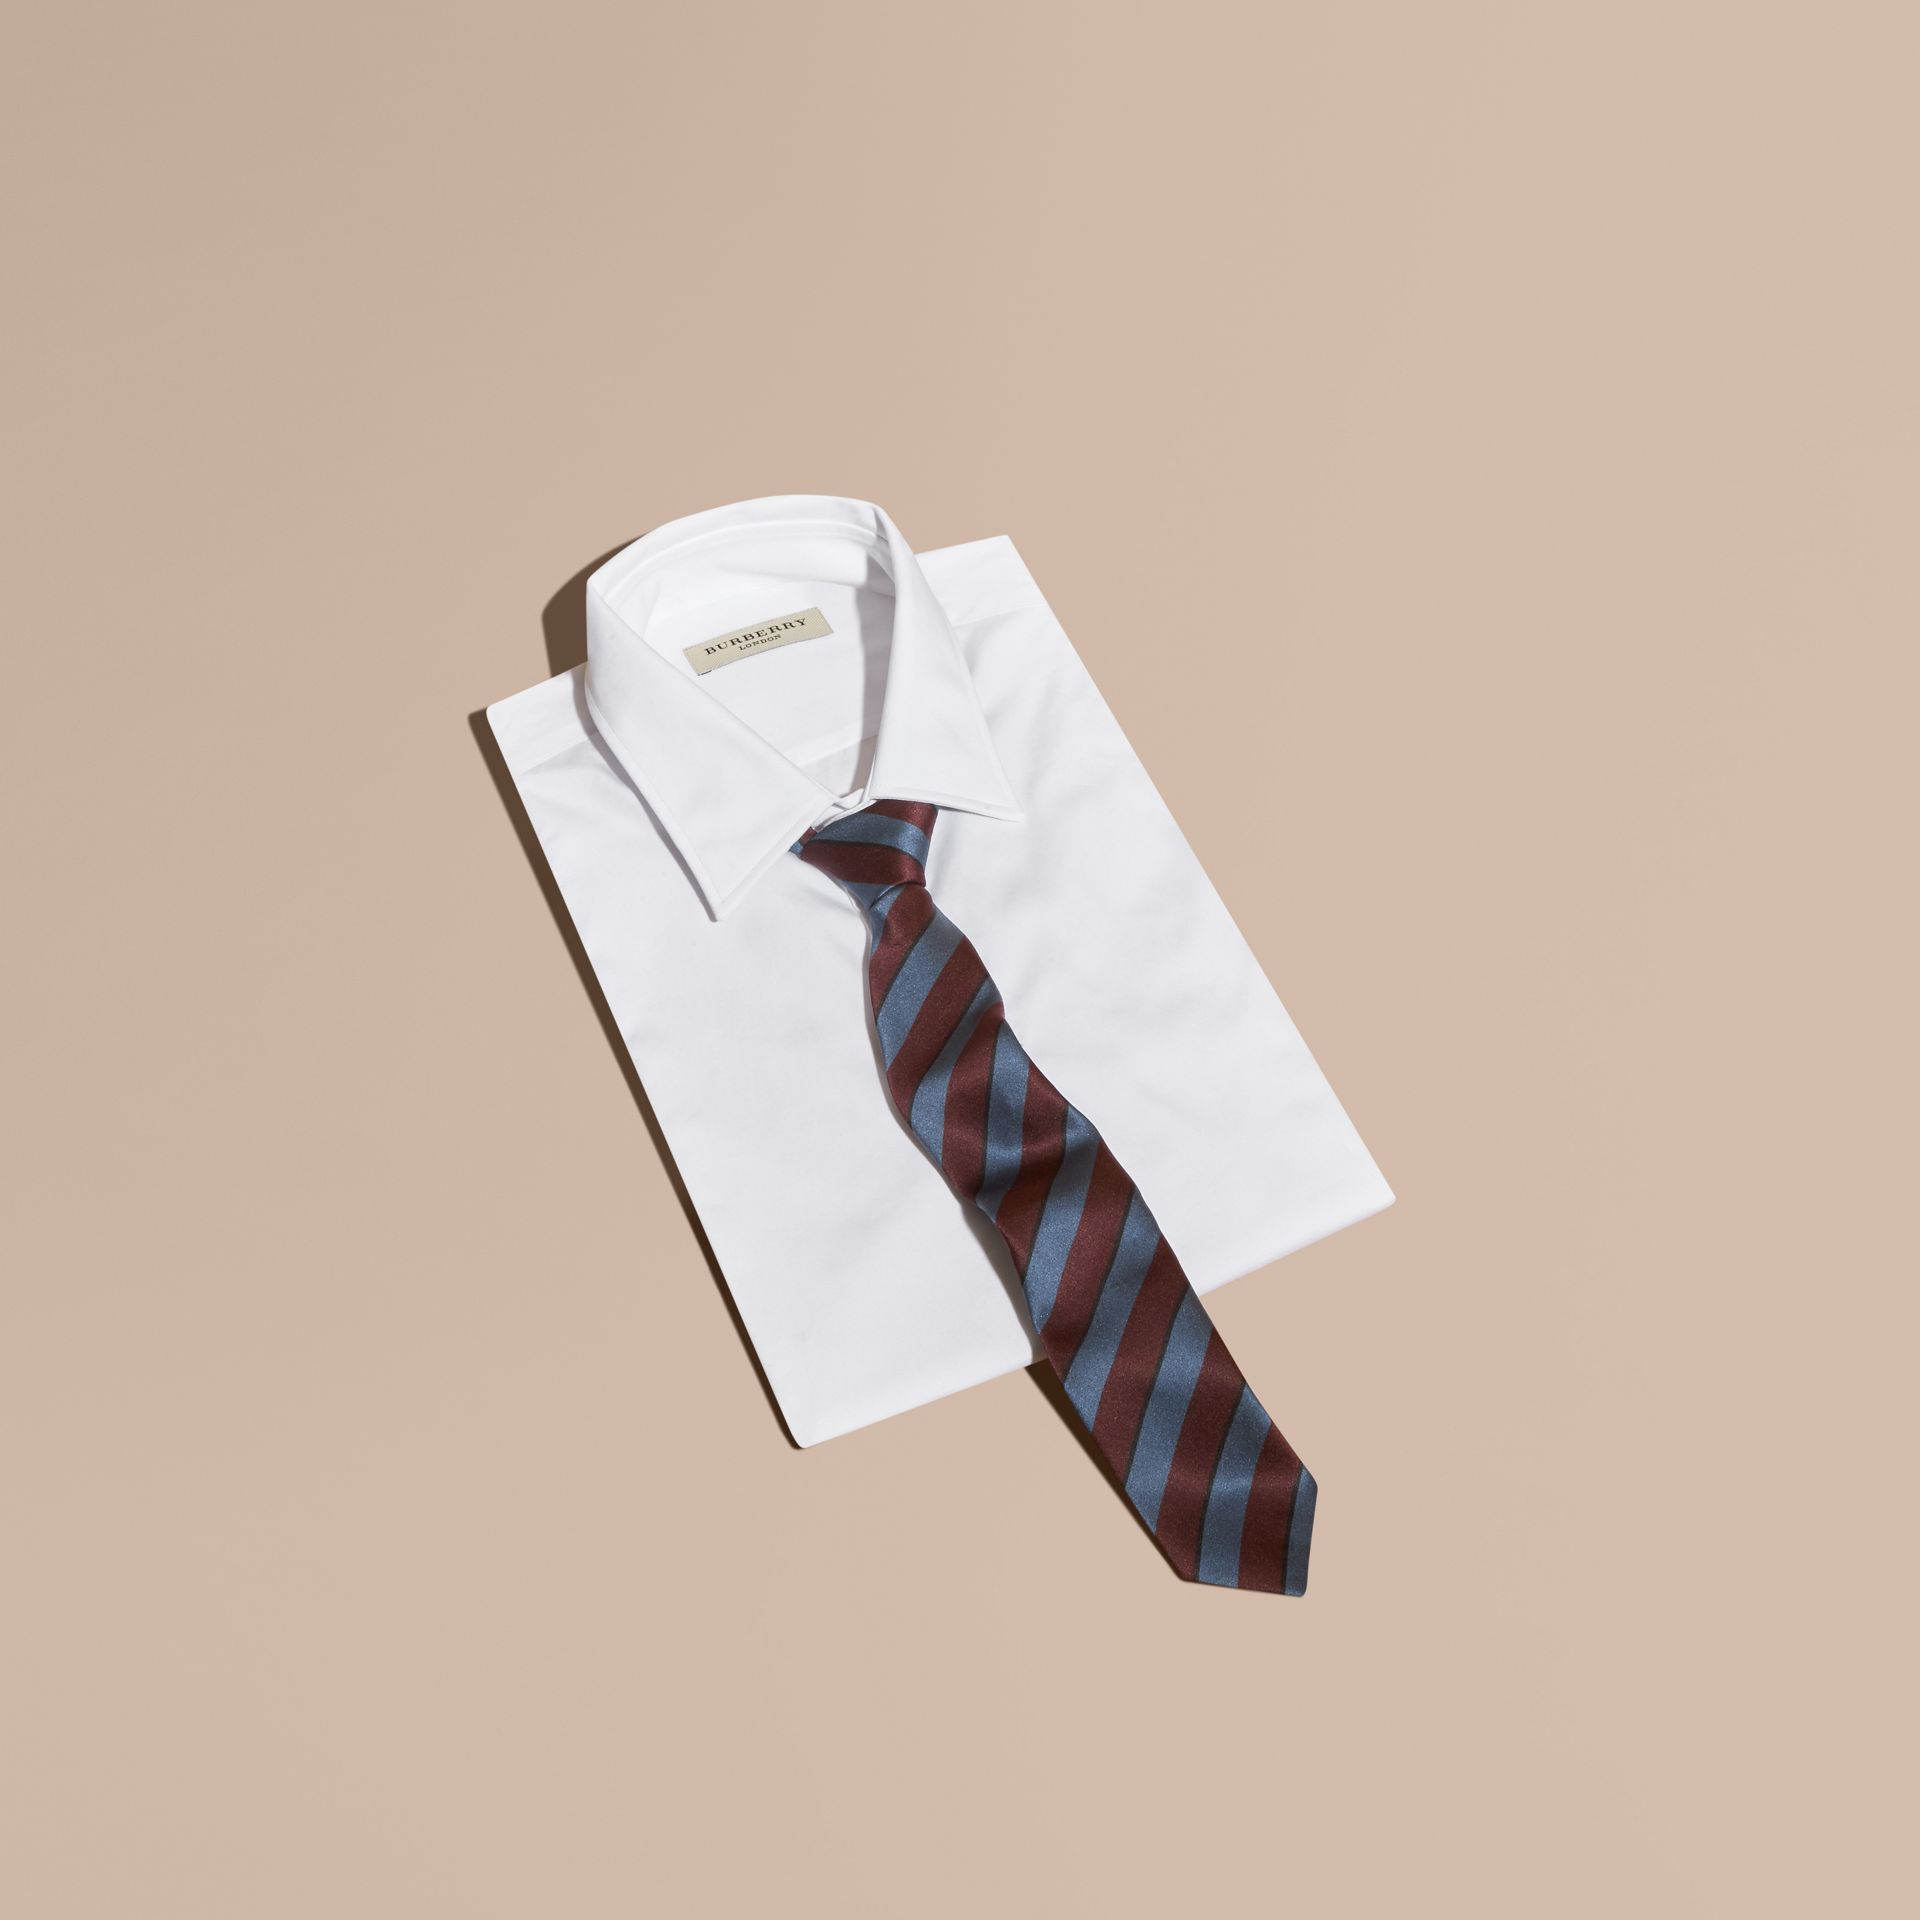 Slim Cut Pyjama Stripe Silk Cotton Tie in Navy - Men | Burberry - gallery image 3